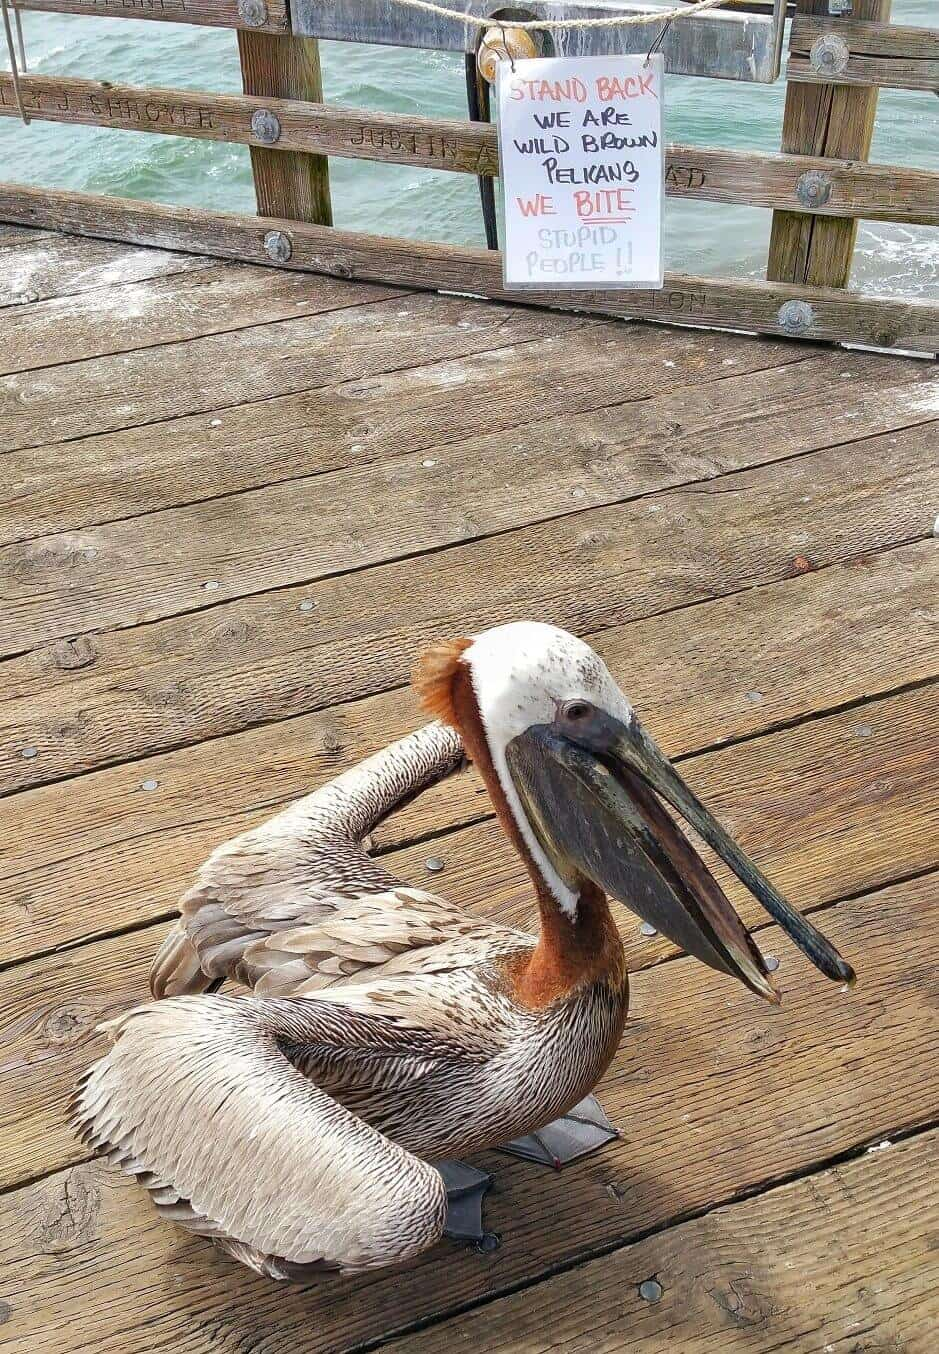 A Brown Pelican Walking on the Pier